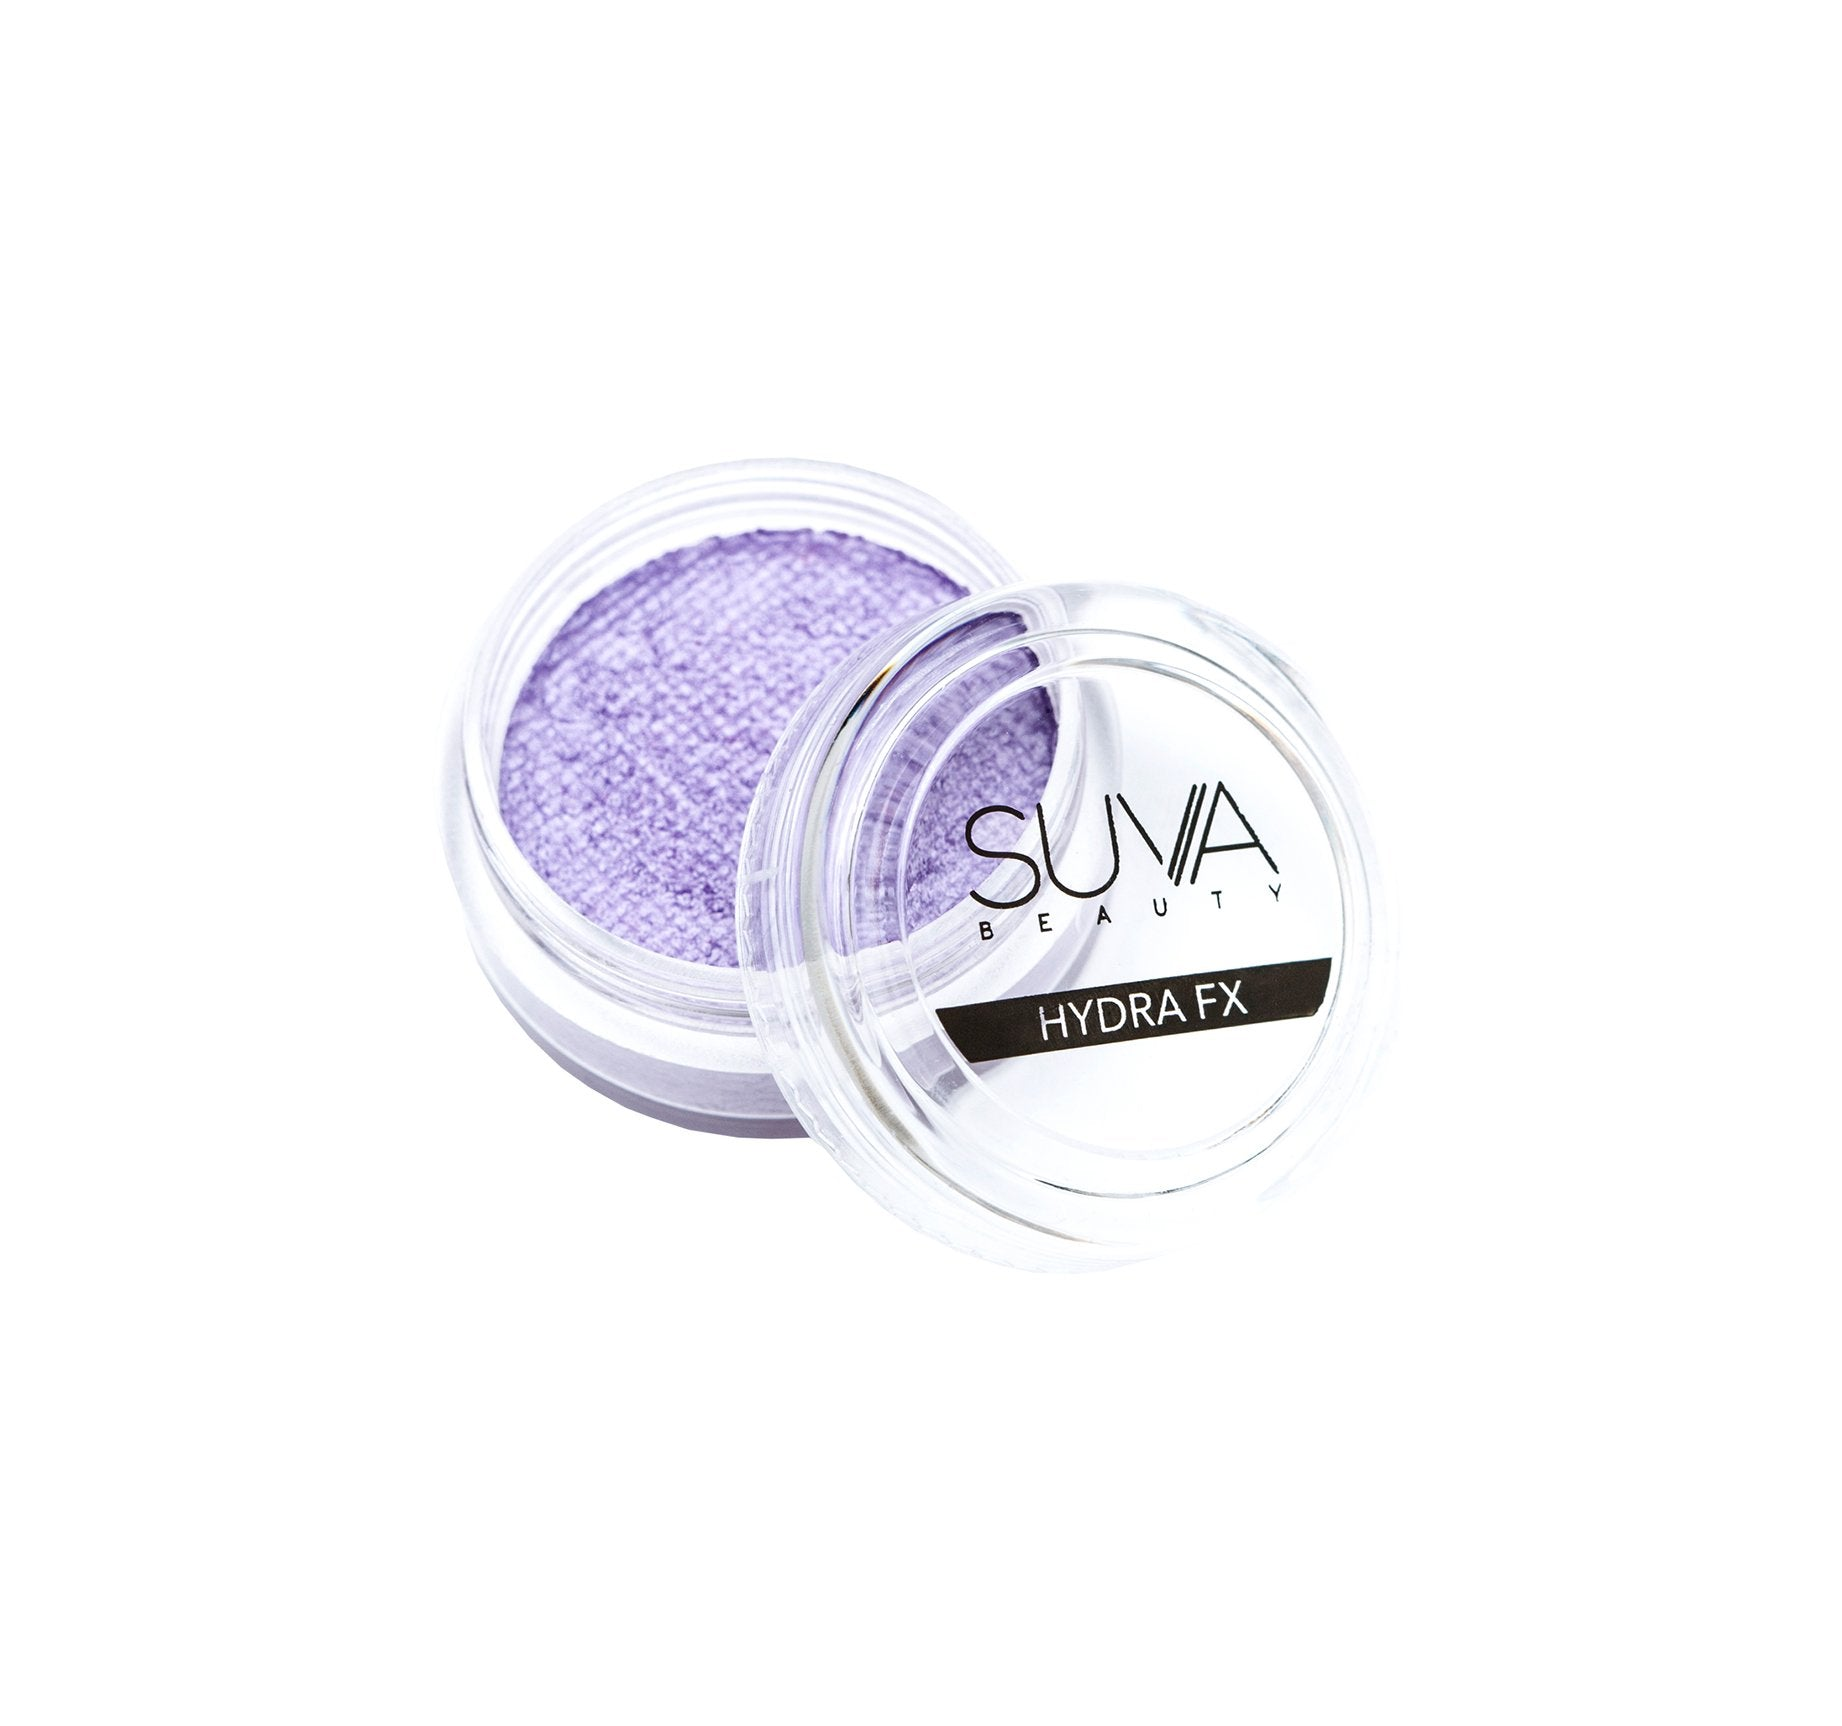 HYDRA FX & LINER - LILAC LUSTRE, view larger image